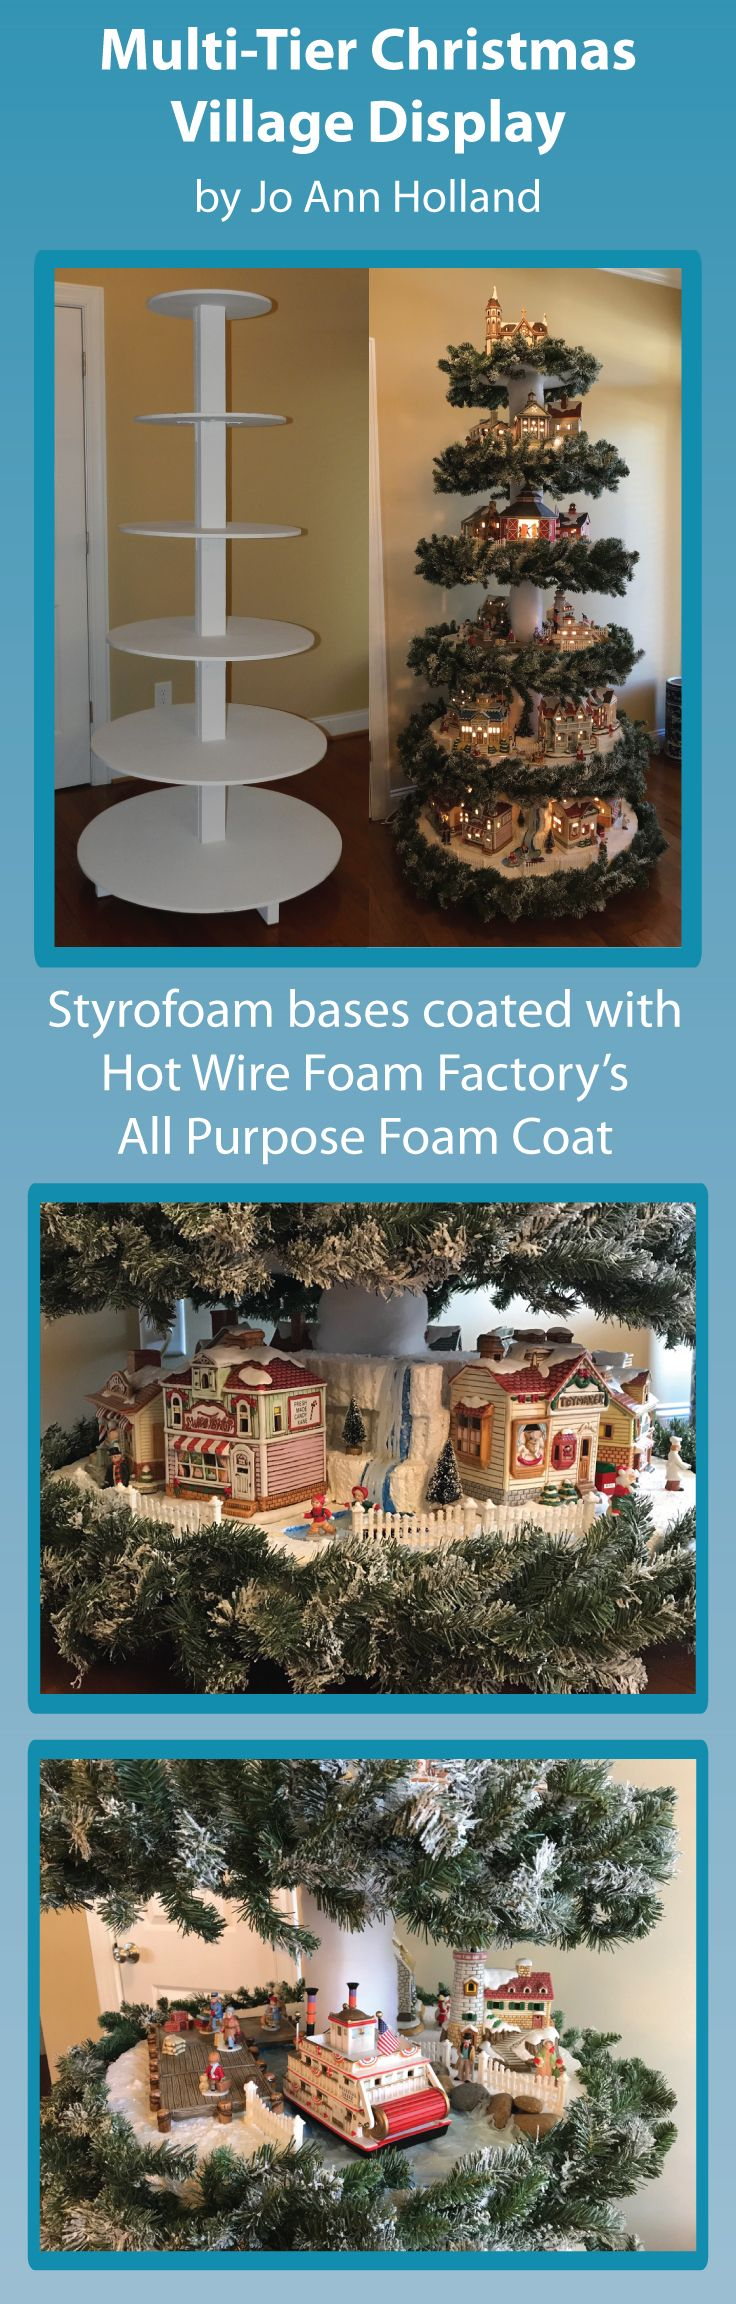 Xmas Village Display Ideas (with Pictures)   paramountgolfforeste.info